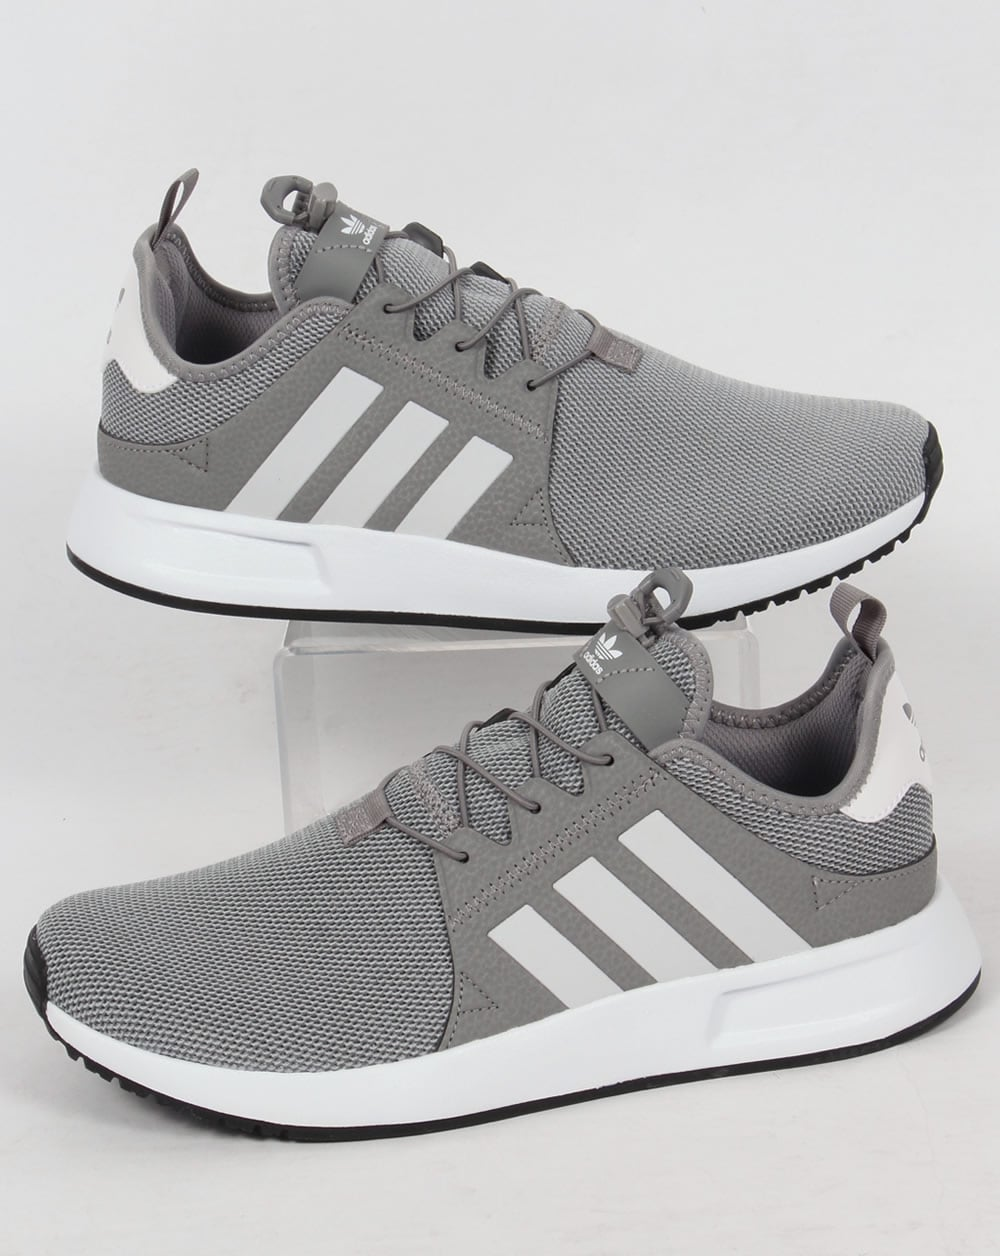 hot sales 66225 50bab adidas Trainers Adidas XPLR Trainers Solid Grey White